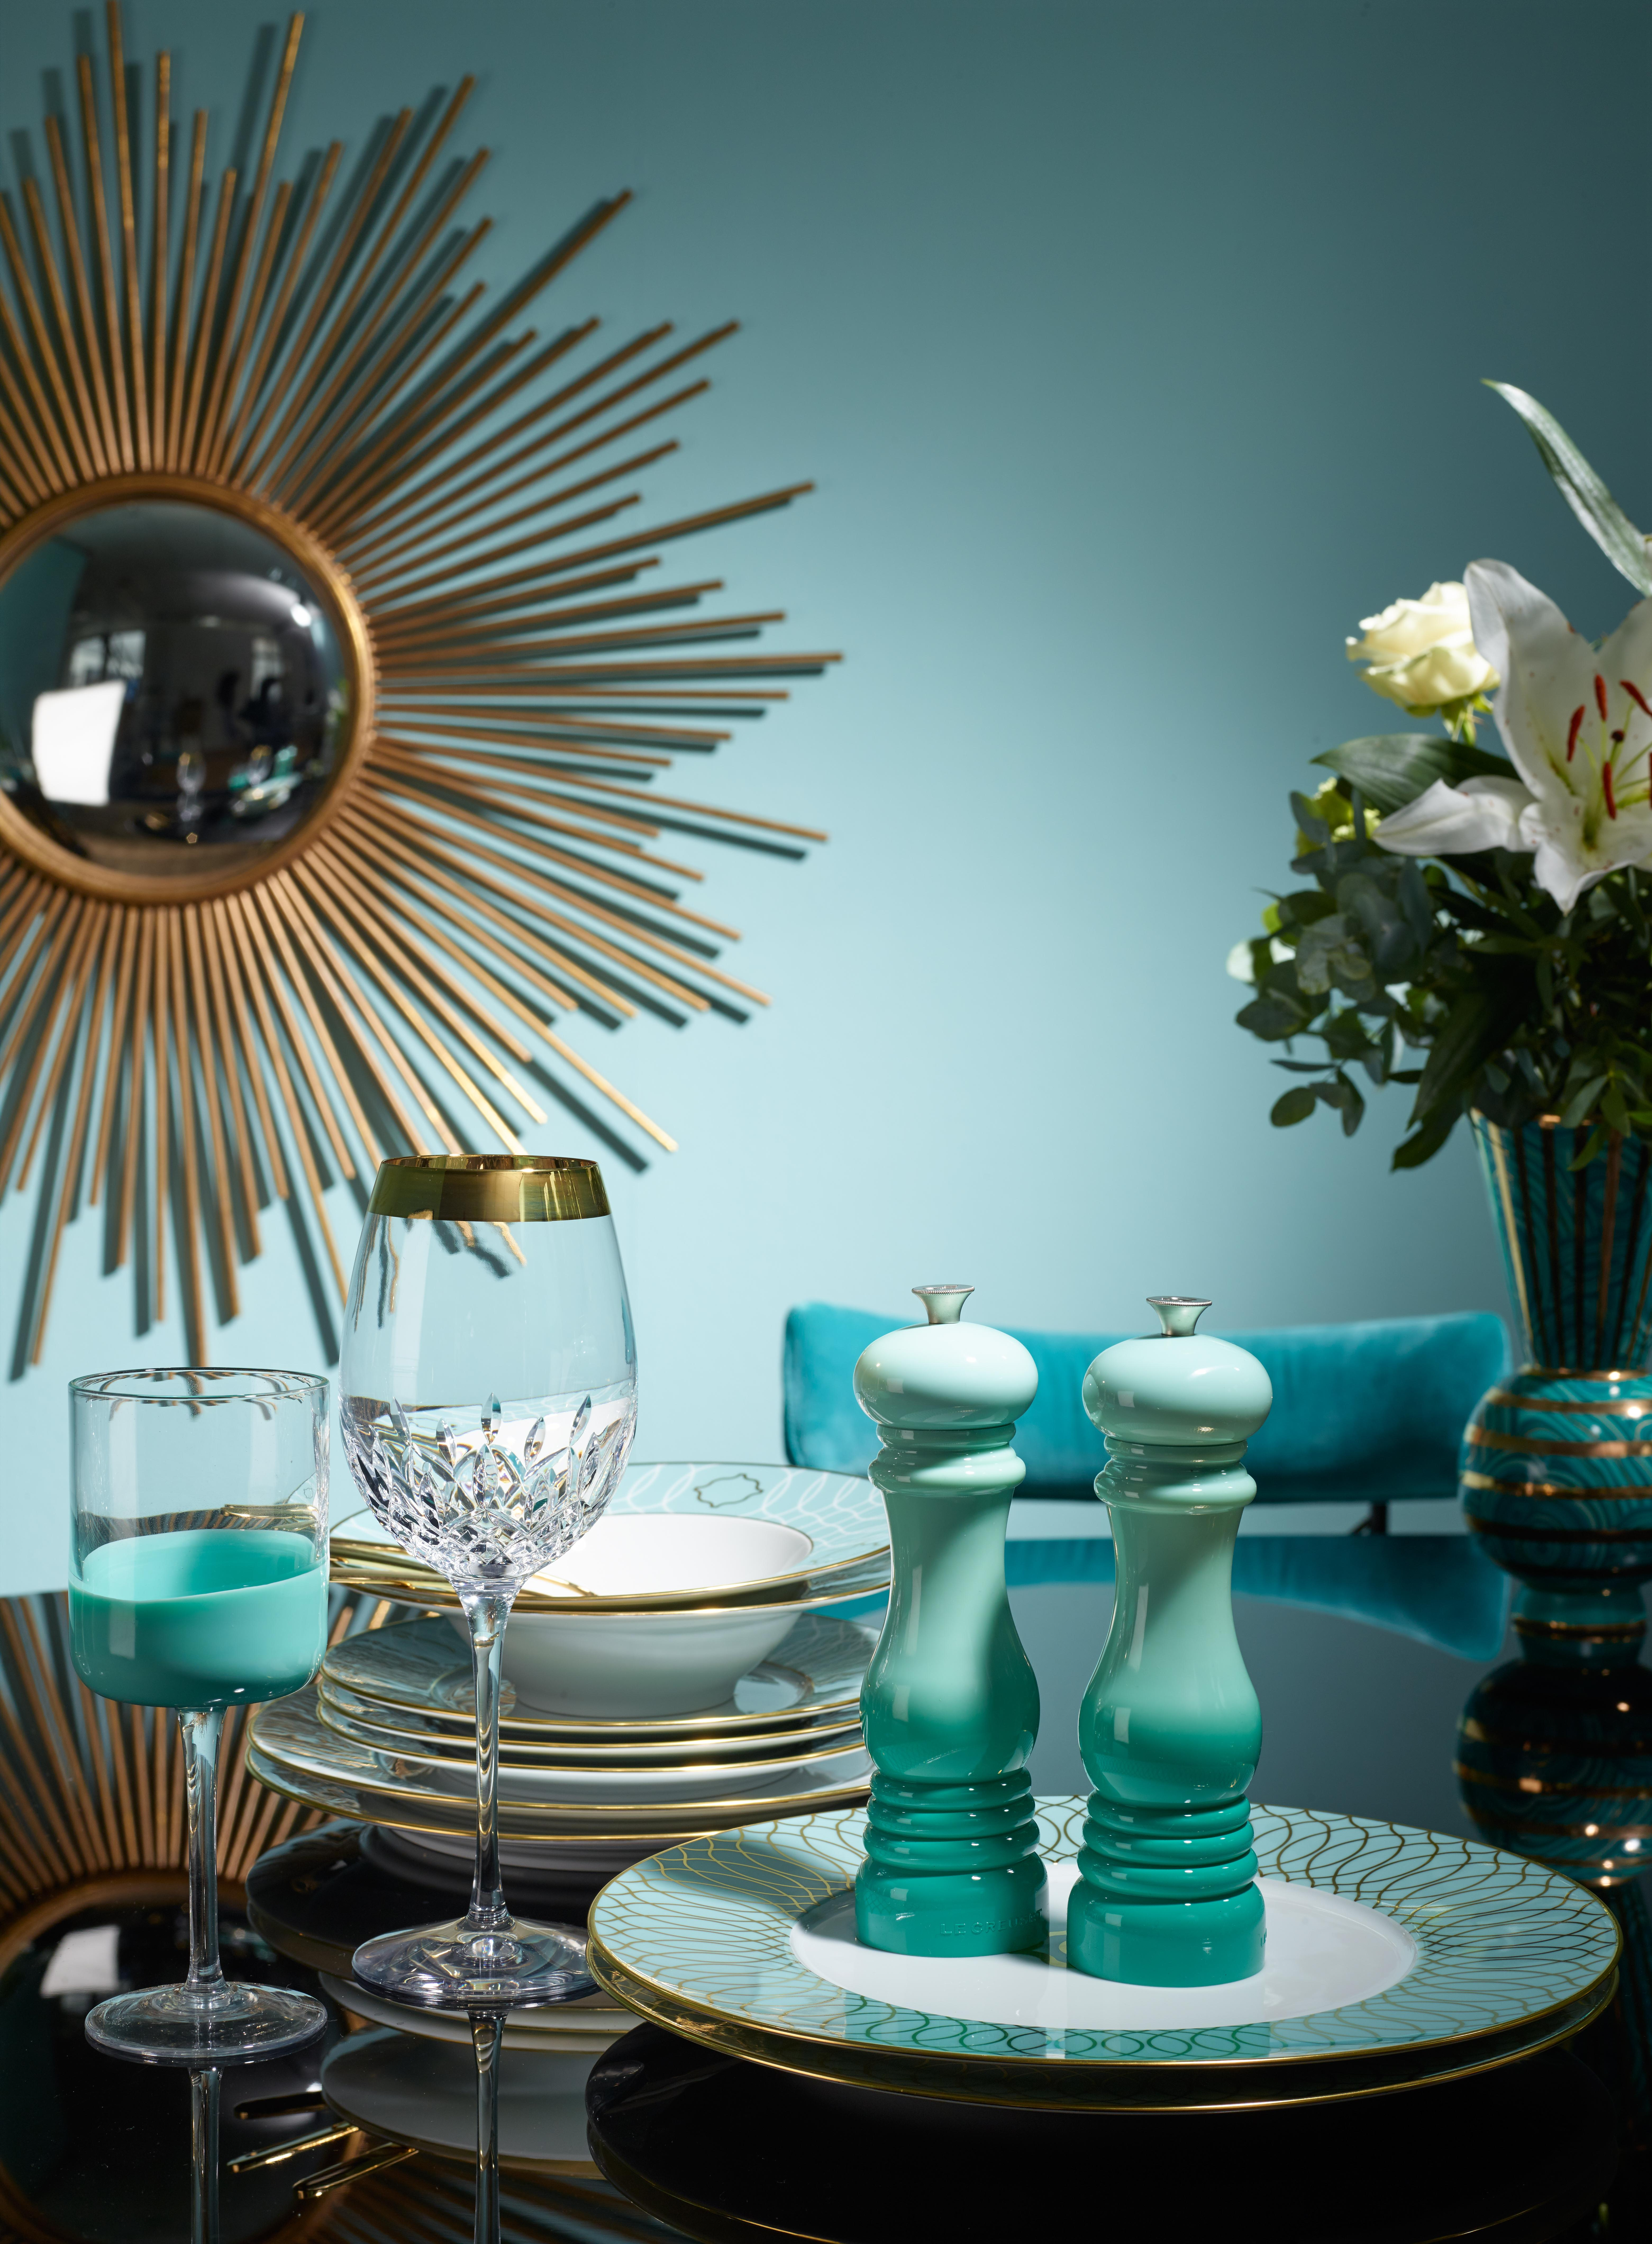 Turquoise wall with golden sun mirror, in front of it a set table with dishes and glasses with gold details